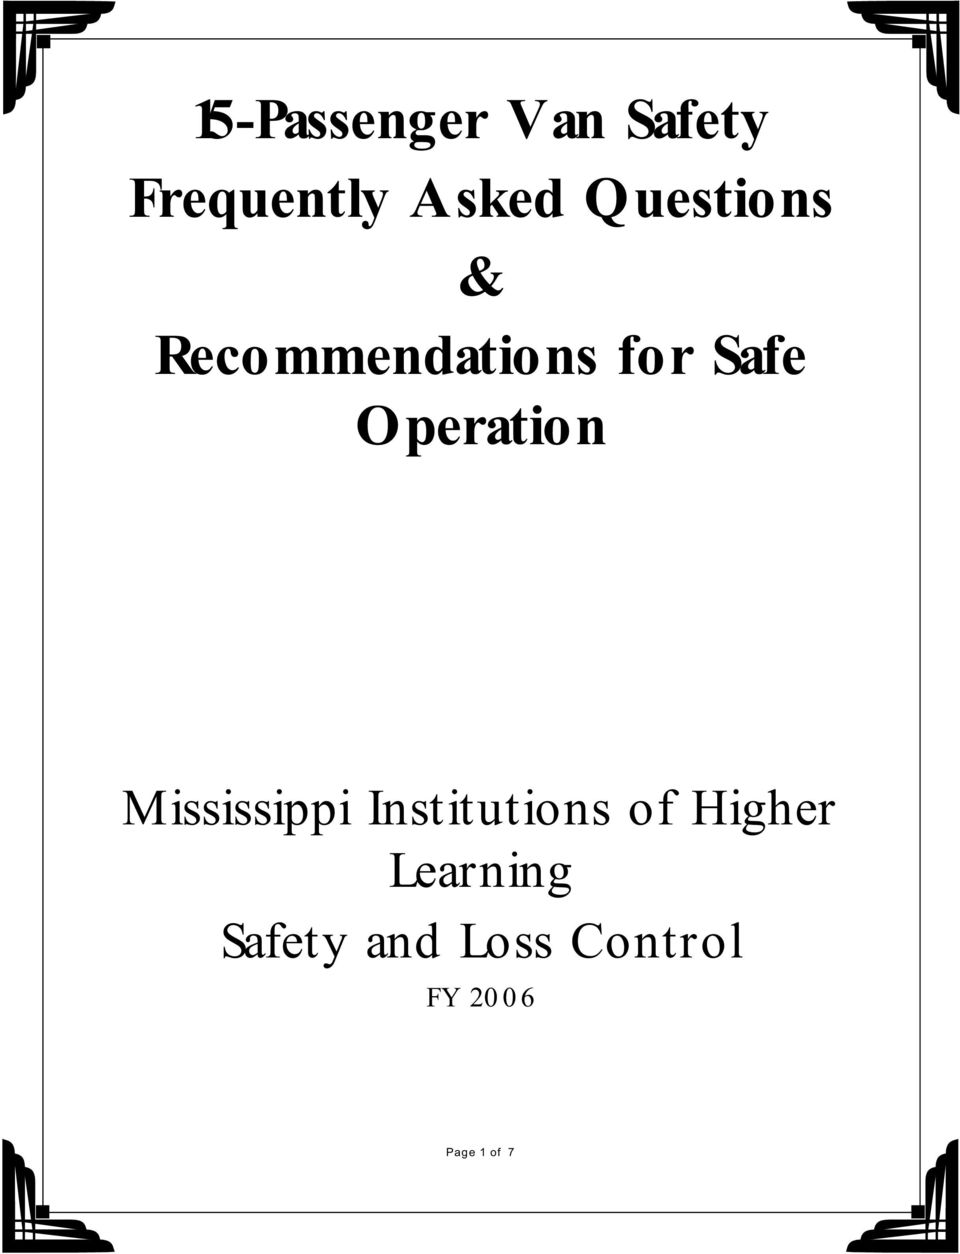 Operation Mississippi Institutions of Higher